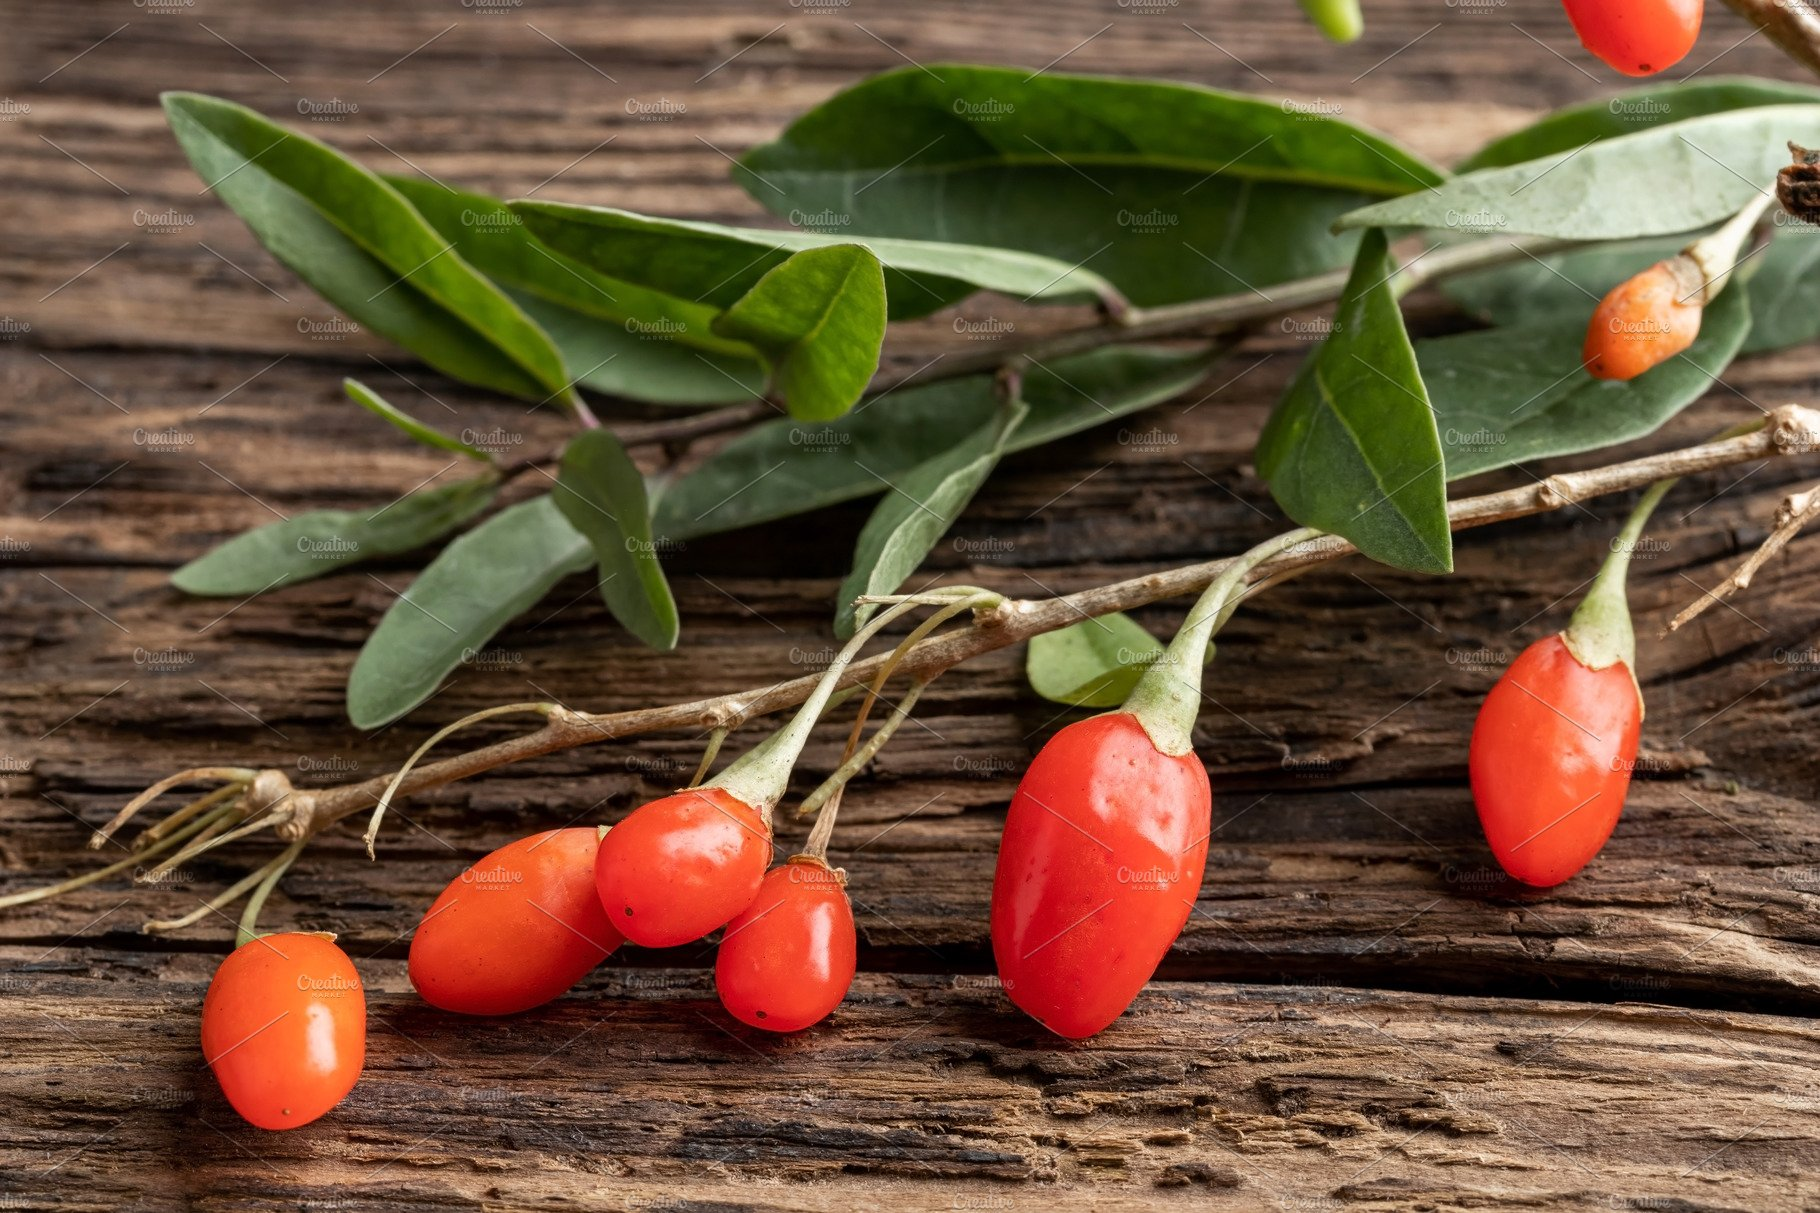 Fresh Goji Berries With Leaves On A High Quality Food Images